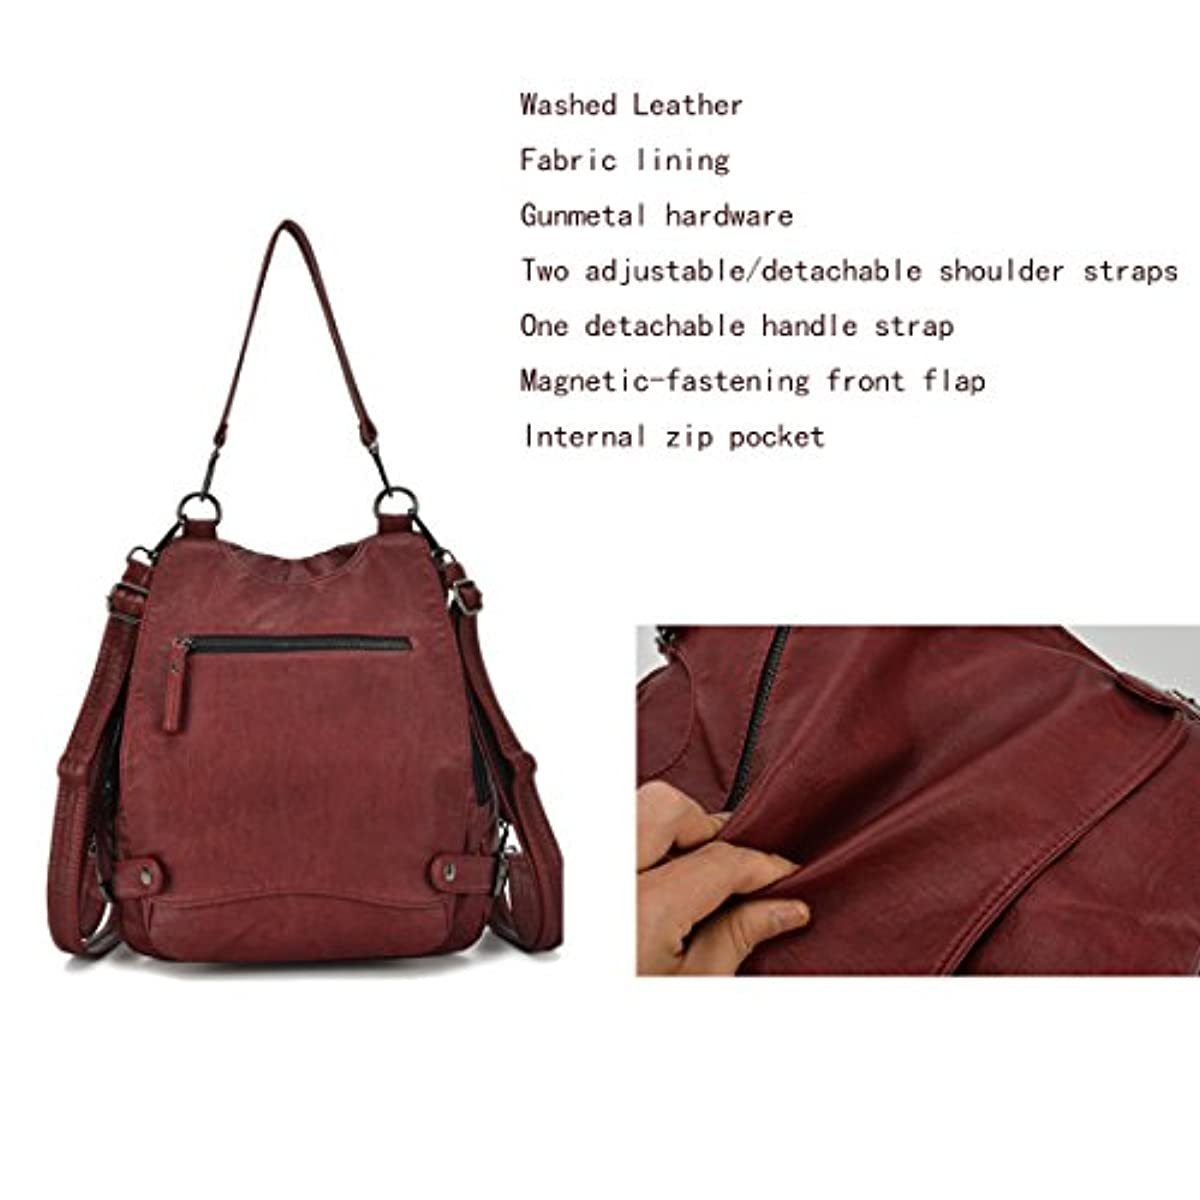 DETAILS. Women Backpack Purse Convertible Ladies Rucksack Washed Leather  Crossbody Large 8a9c02dc79297